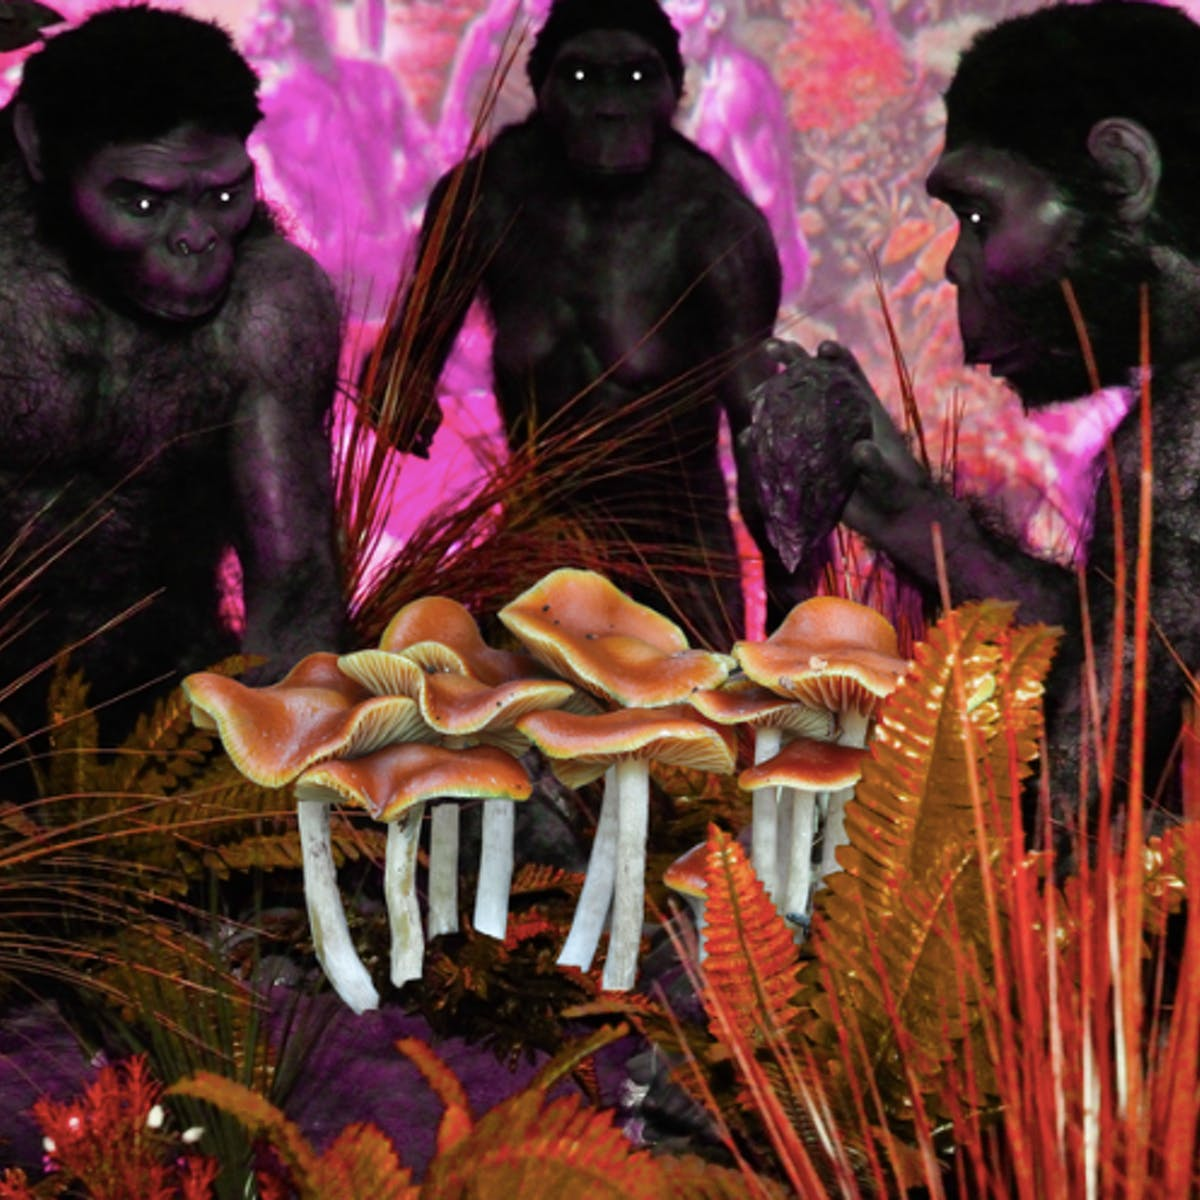 In 'Stoned Ape' Theory, Consciousness Has Roots in Psilocybin | Inverse